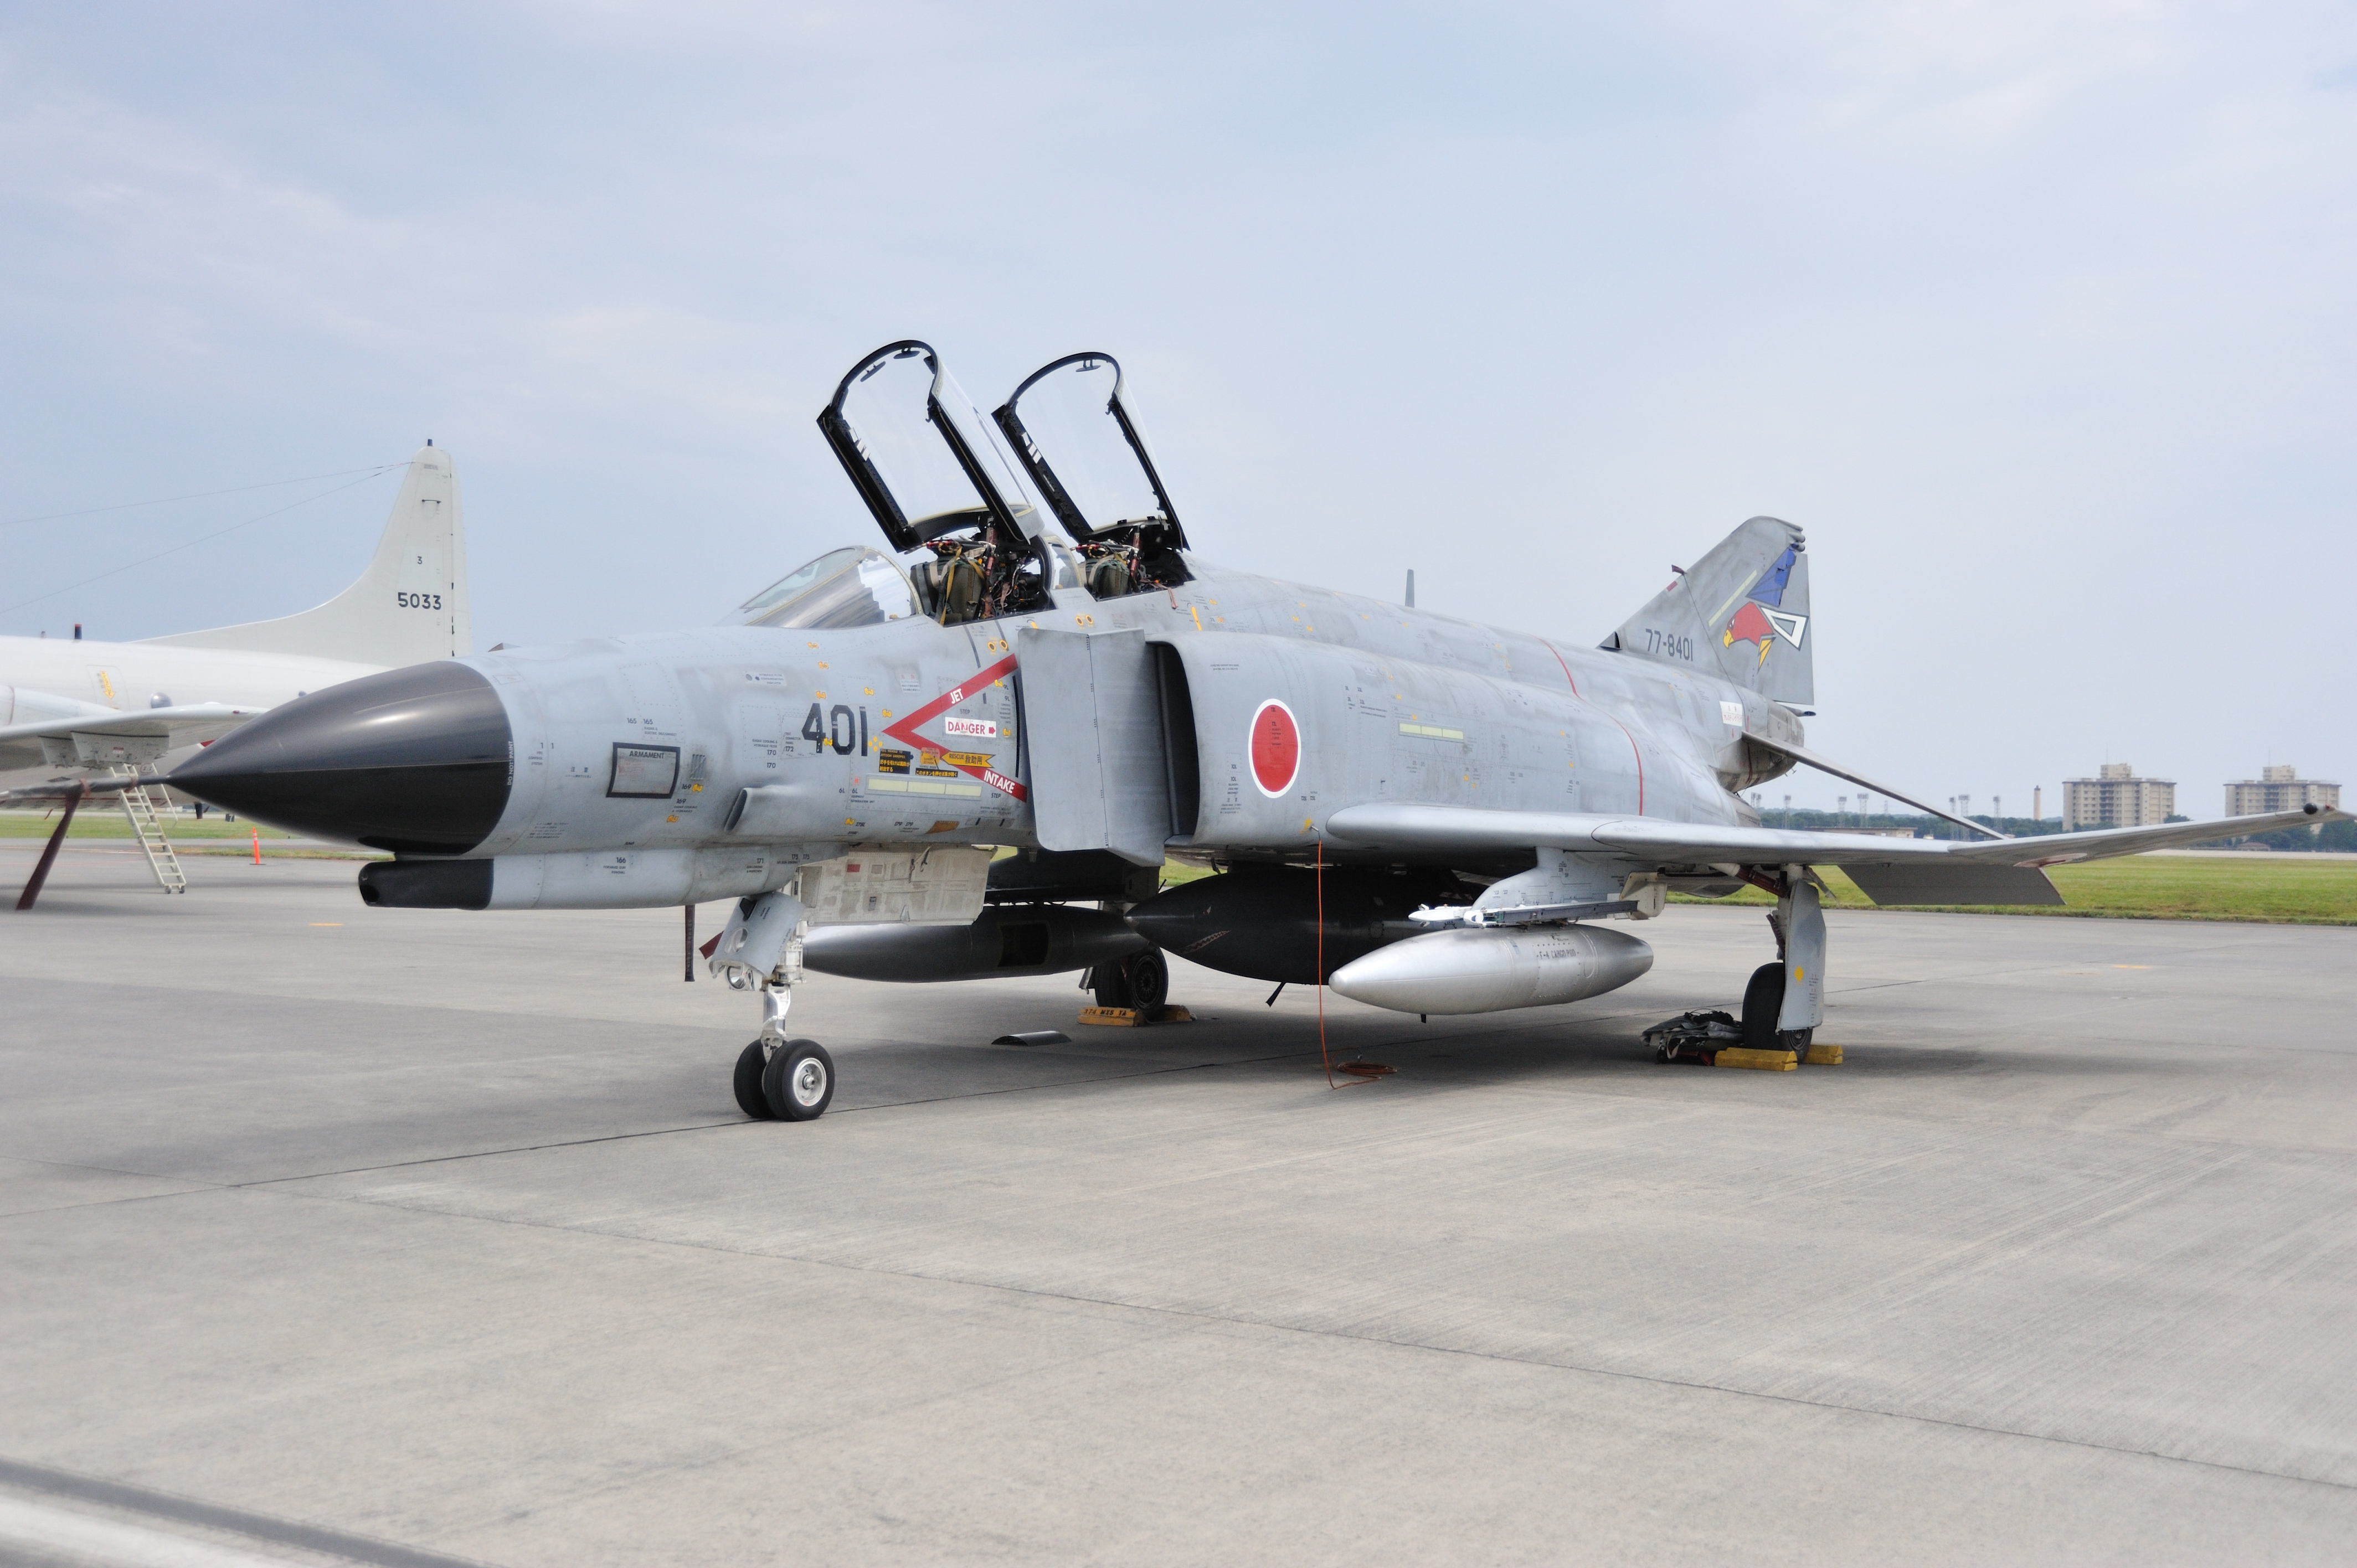 File:JASDF F-4EJ yokota ab.JPG - Wikipedia, the free encyclopedia